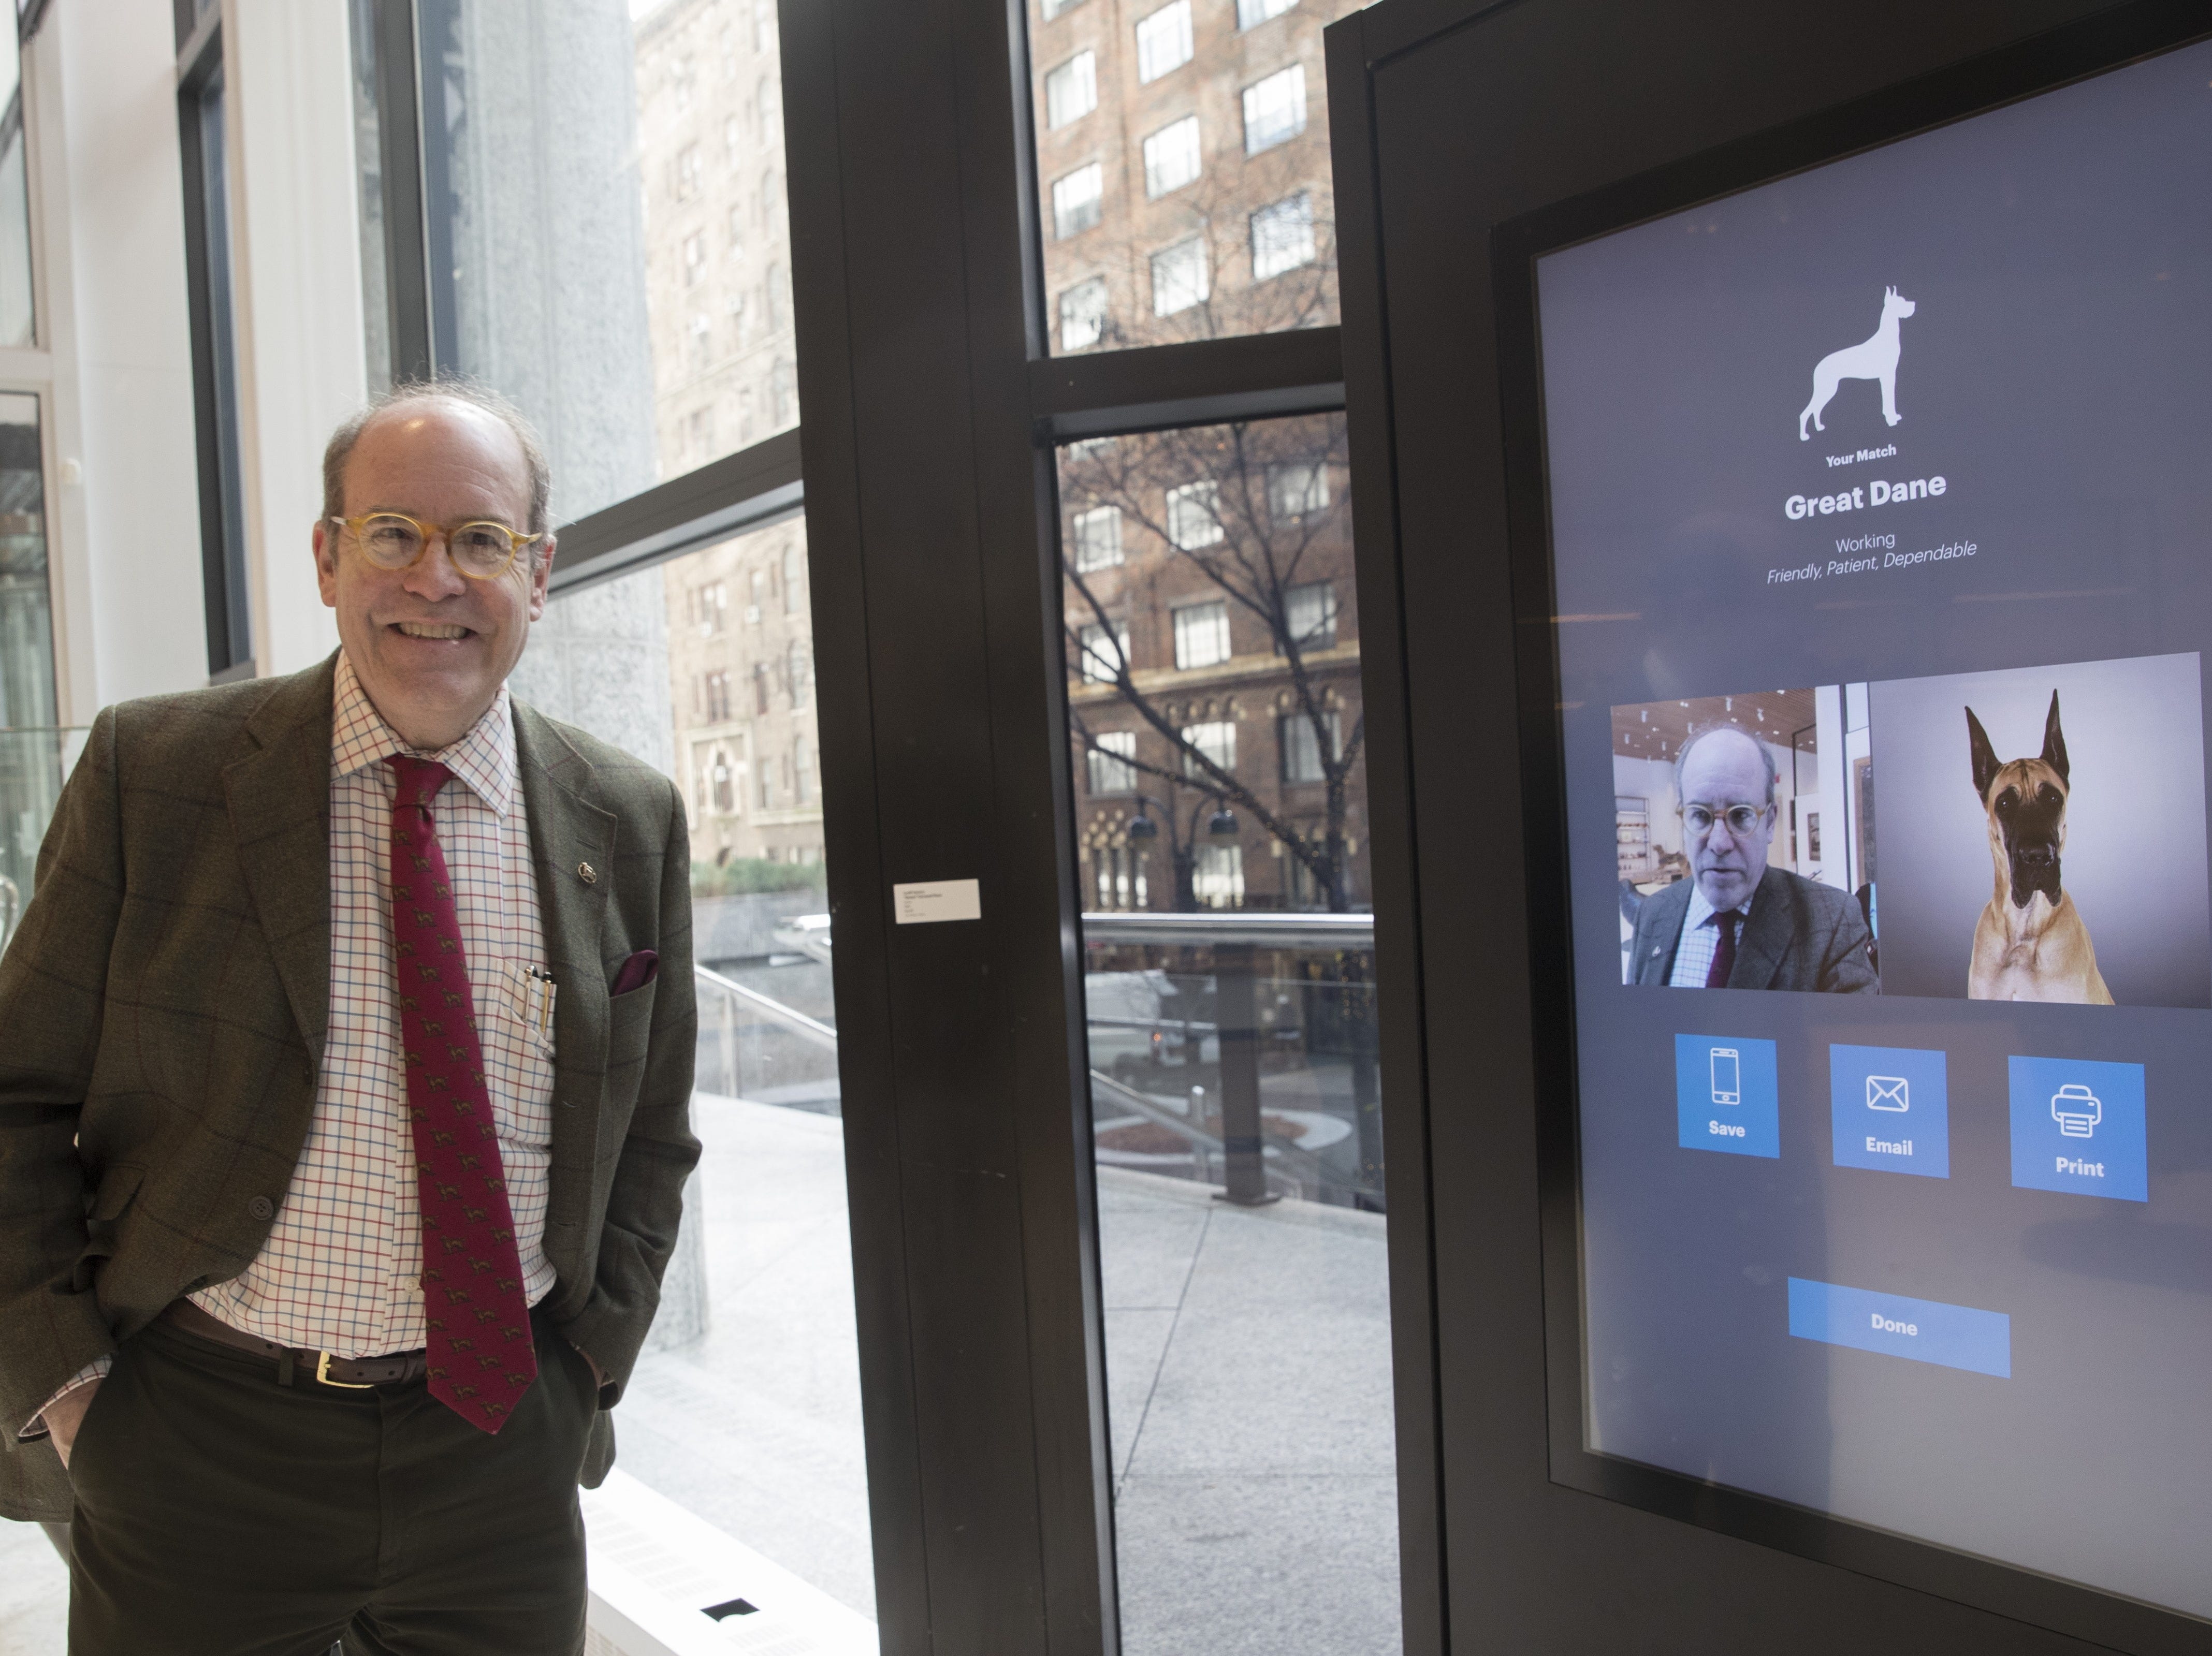 Alan Fausel, Executive Director of The American Kennel Club Museum of the Dog, smiles after finding his dog breed match at the Find Your Match interactive kiosk during a tour of the museum in New York. This Wednesday, Jan. 9, 2019, photo shows American Kennel Club Museum of the Dog's Executive Director Alan Fausel smiling after finding his dog breed match at the Find Your Match interactive kiosk during a tour of the museum in New York. The museum opens Feb. 8. (AP Photo/Mary Altaffer)